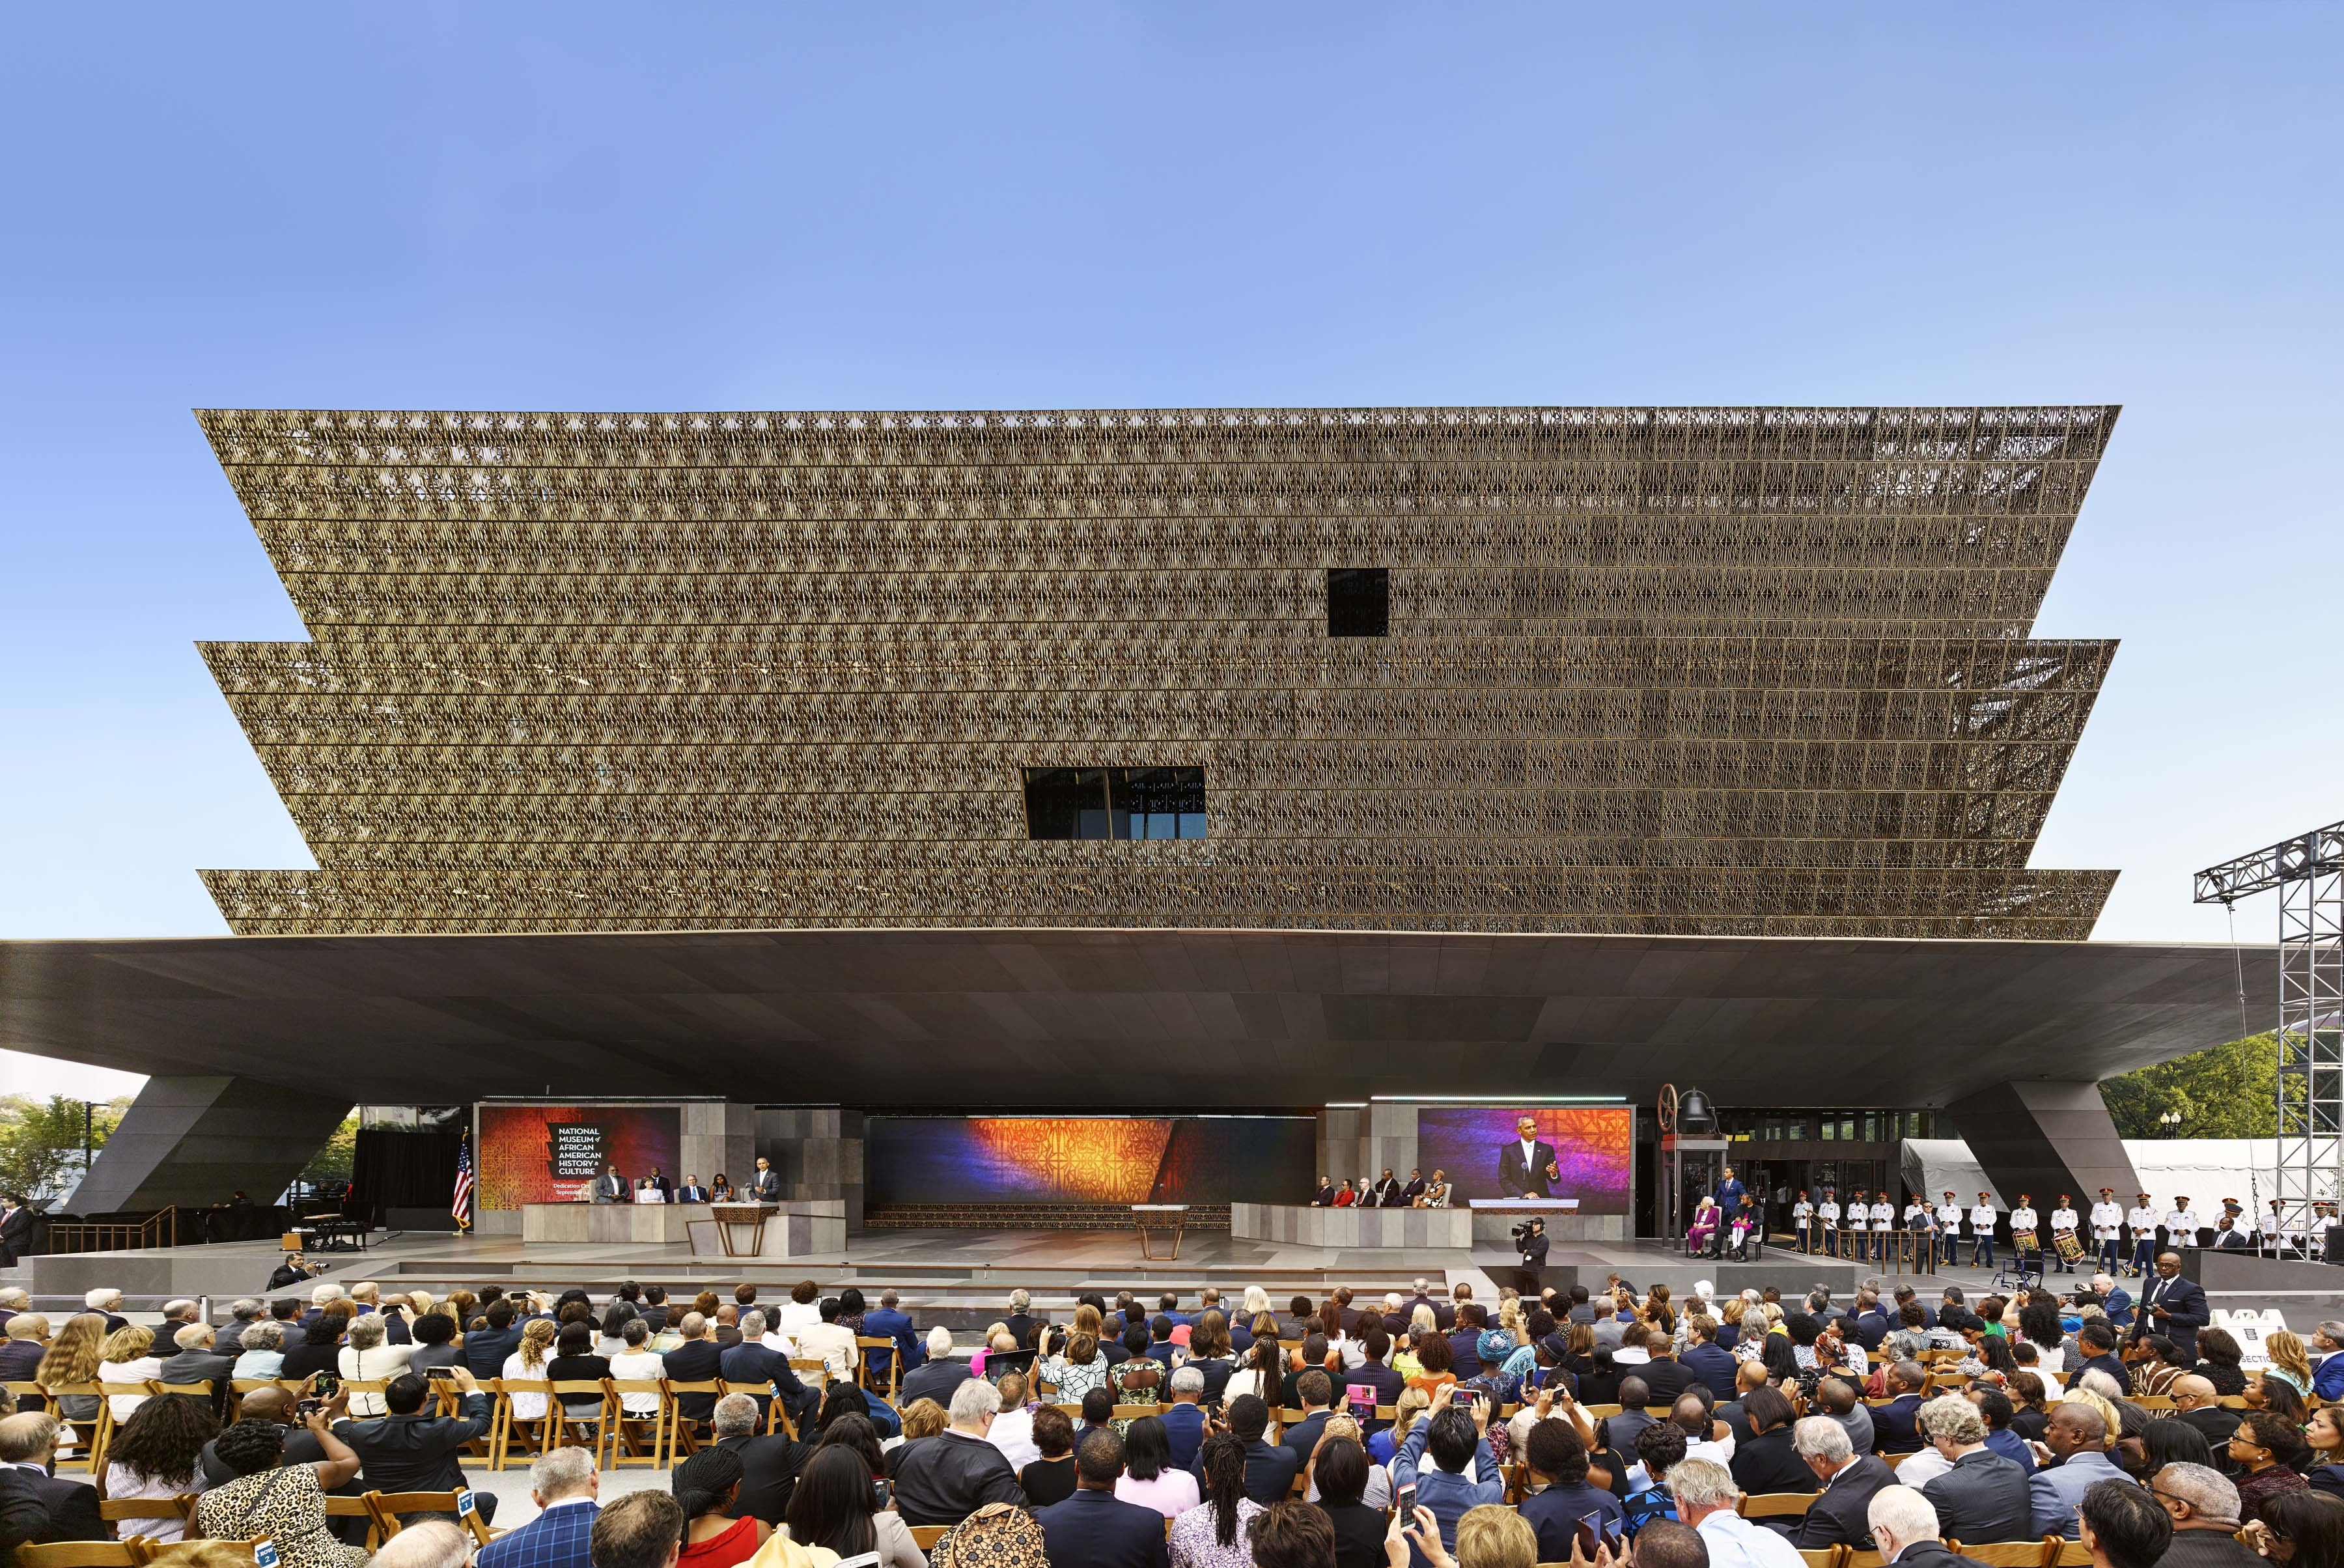 photo of NMAAHC grand opening ceremony with audience in the foreground and the stage and museum building in the background